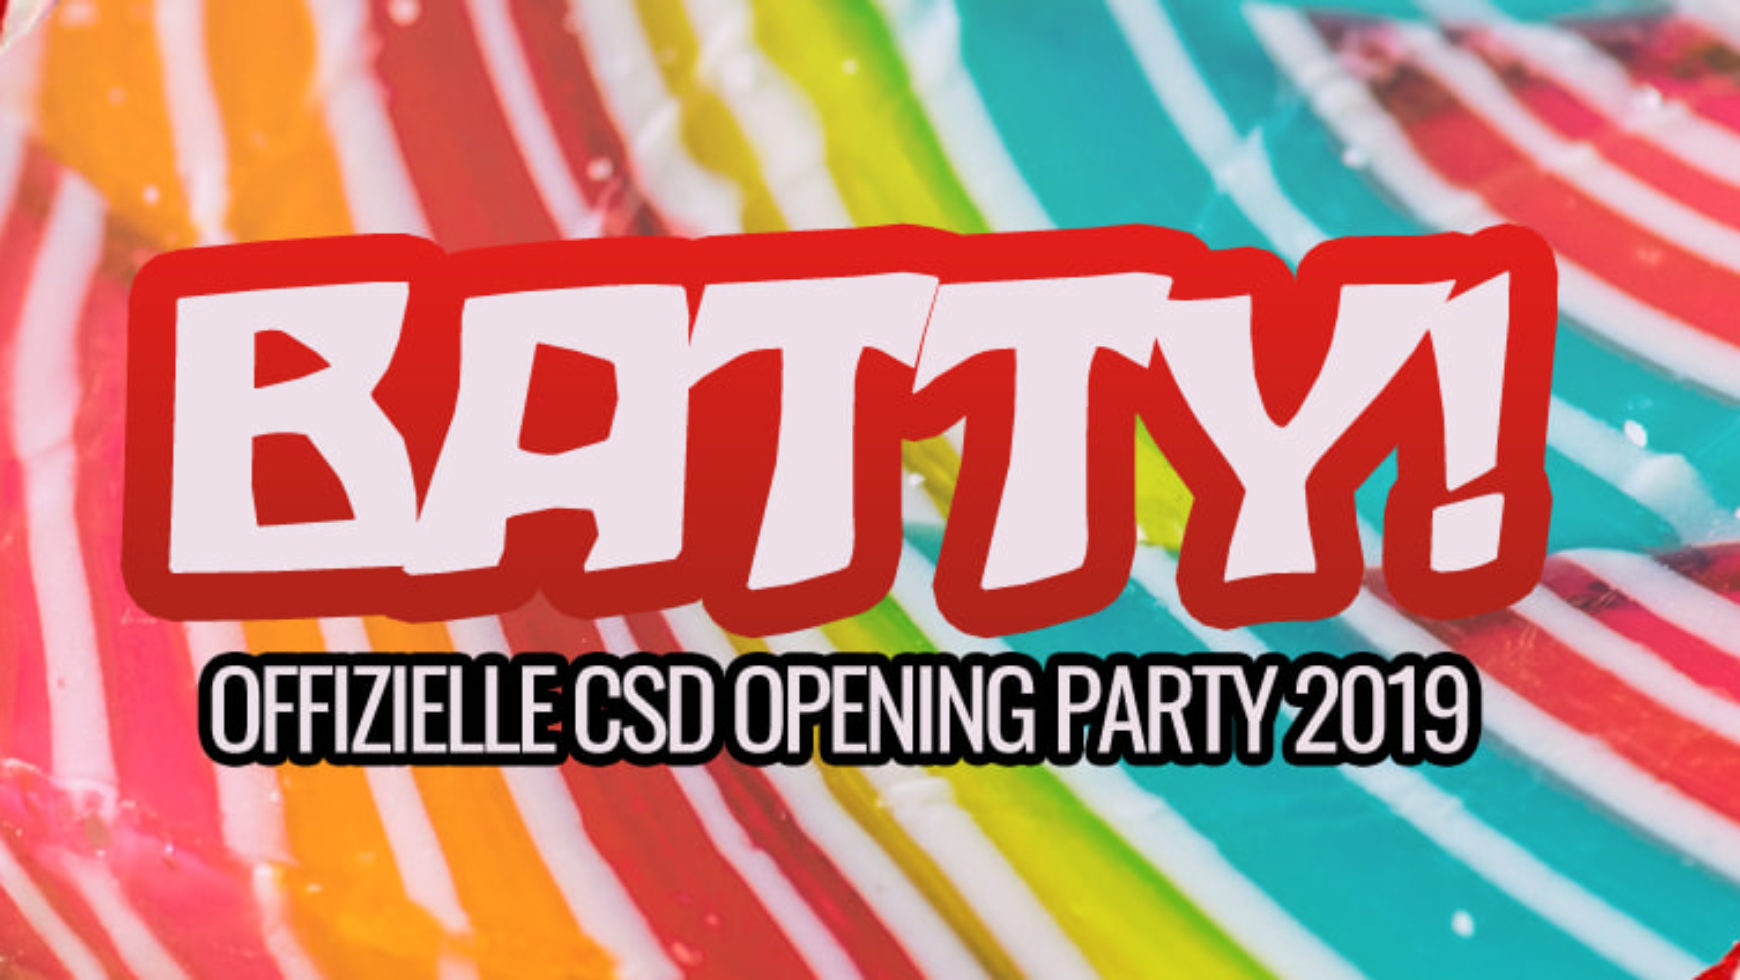 Batty! Offizielle CSD Weekend Opening Party – Candyland